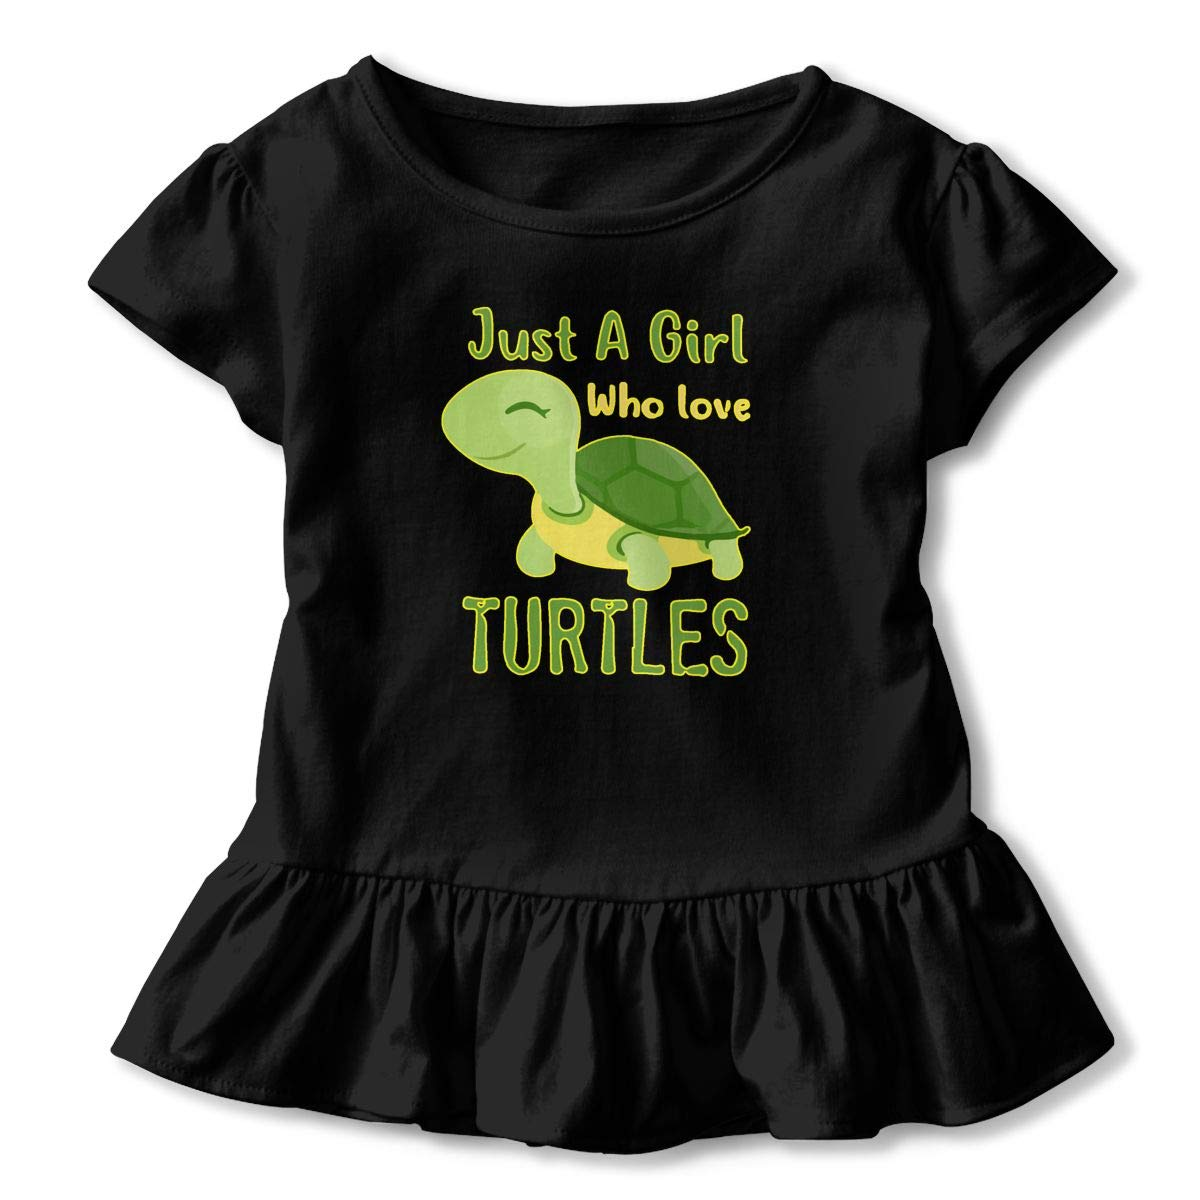 Just A Girl Who Loves Turtles Toddler Girls T Shirt Kids Cotton Short Sleeve Ruffle Tee